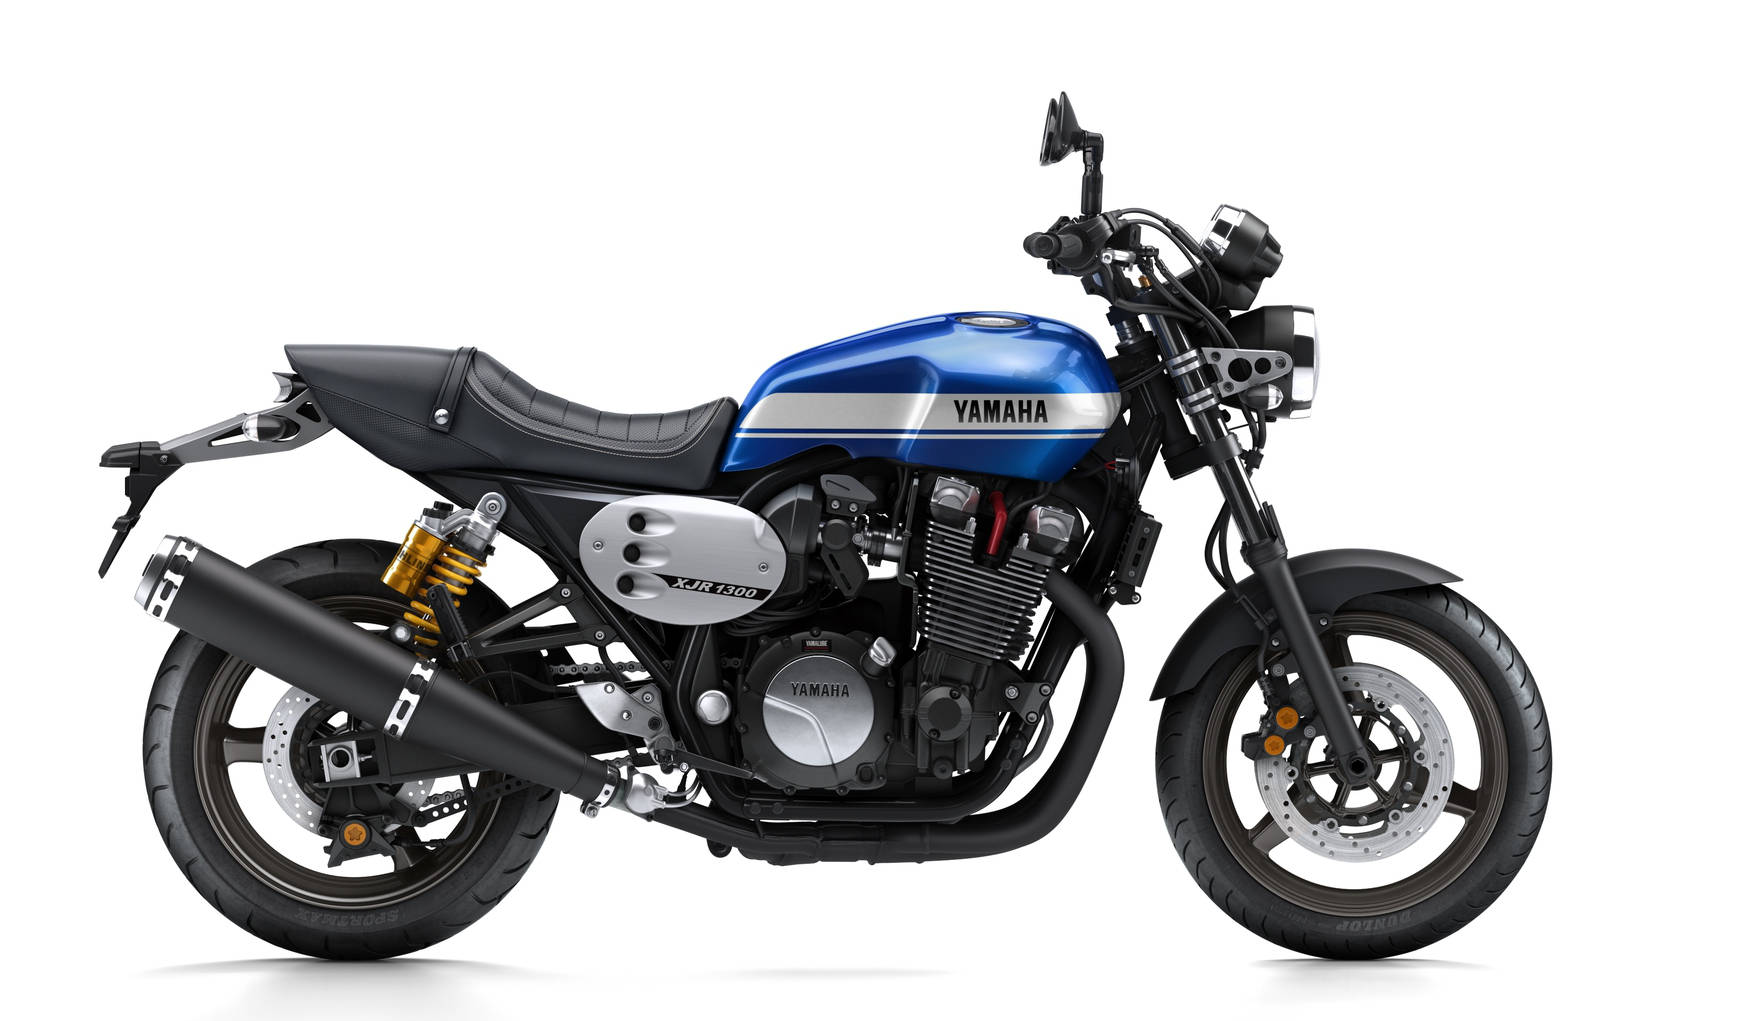 No Bike For You Yamaha Reveals Hipster Restyled Xjr1300